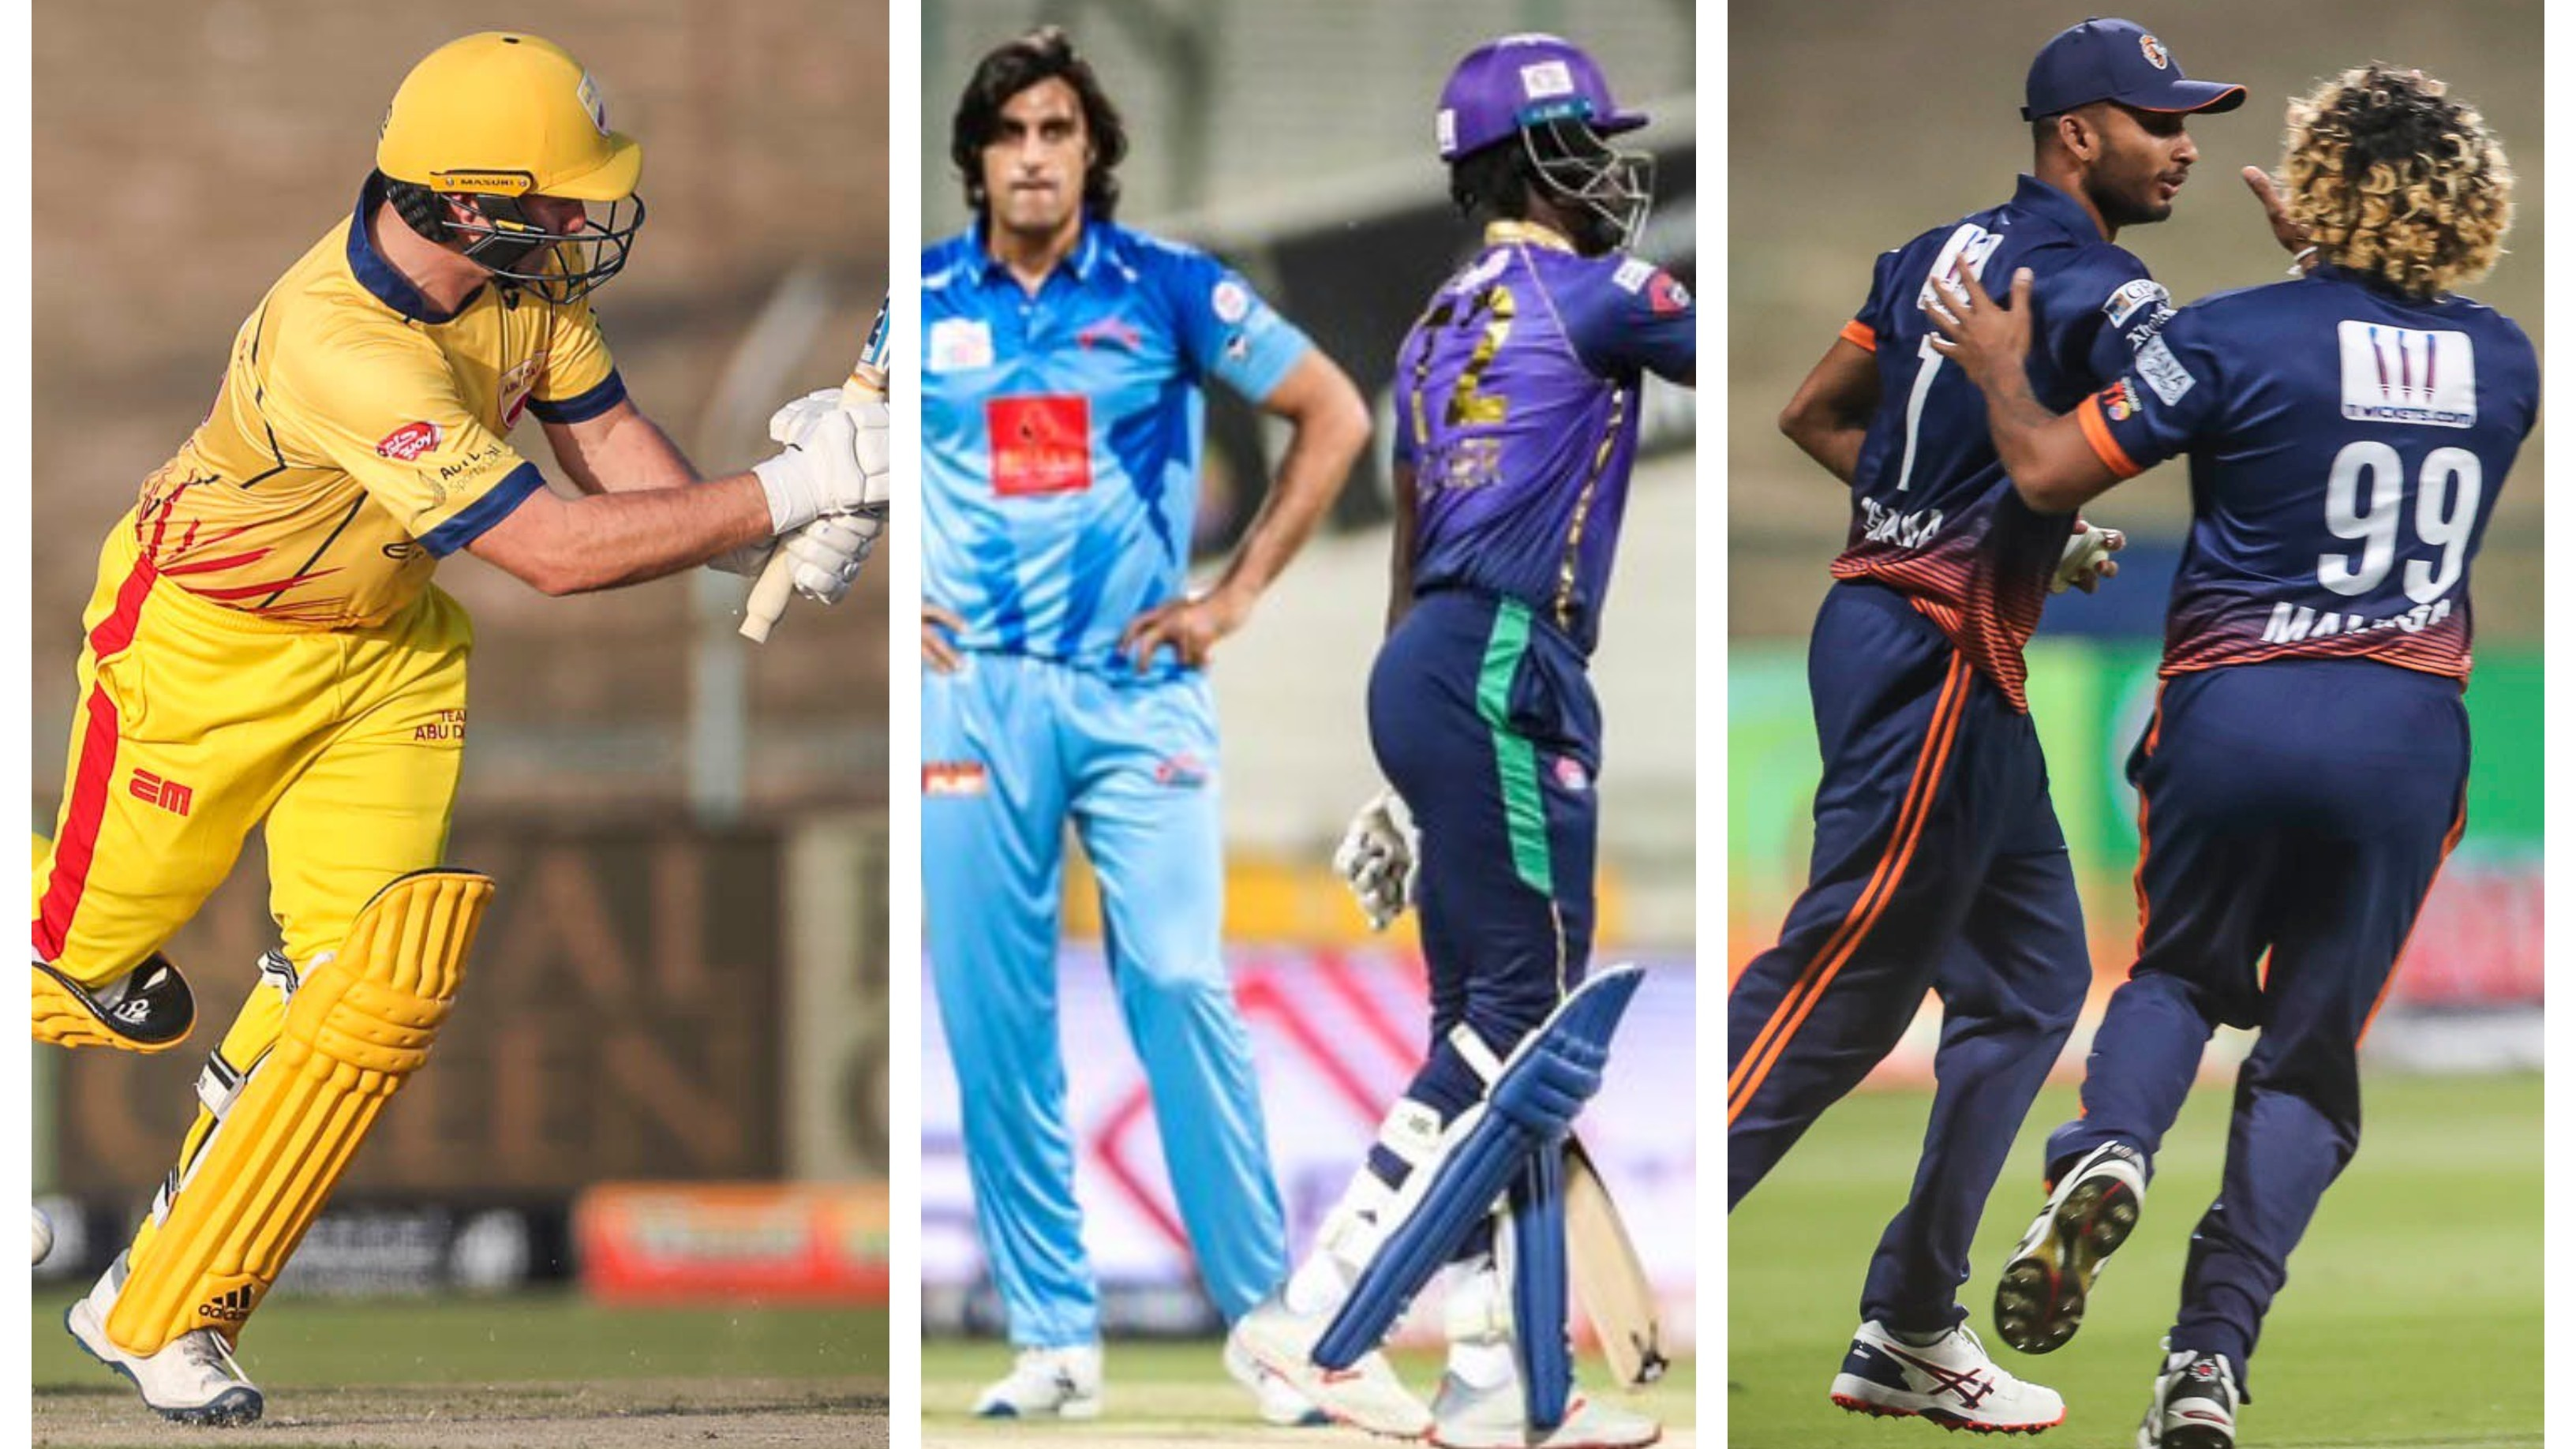 T10 League 2019: Abu Dhabi beat Warriors by 6 wickets; Tigers defeat Tuskers by 5 wickets; Arabians thrash Qalandars by 47 runs